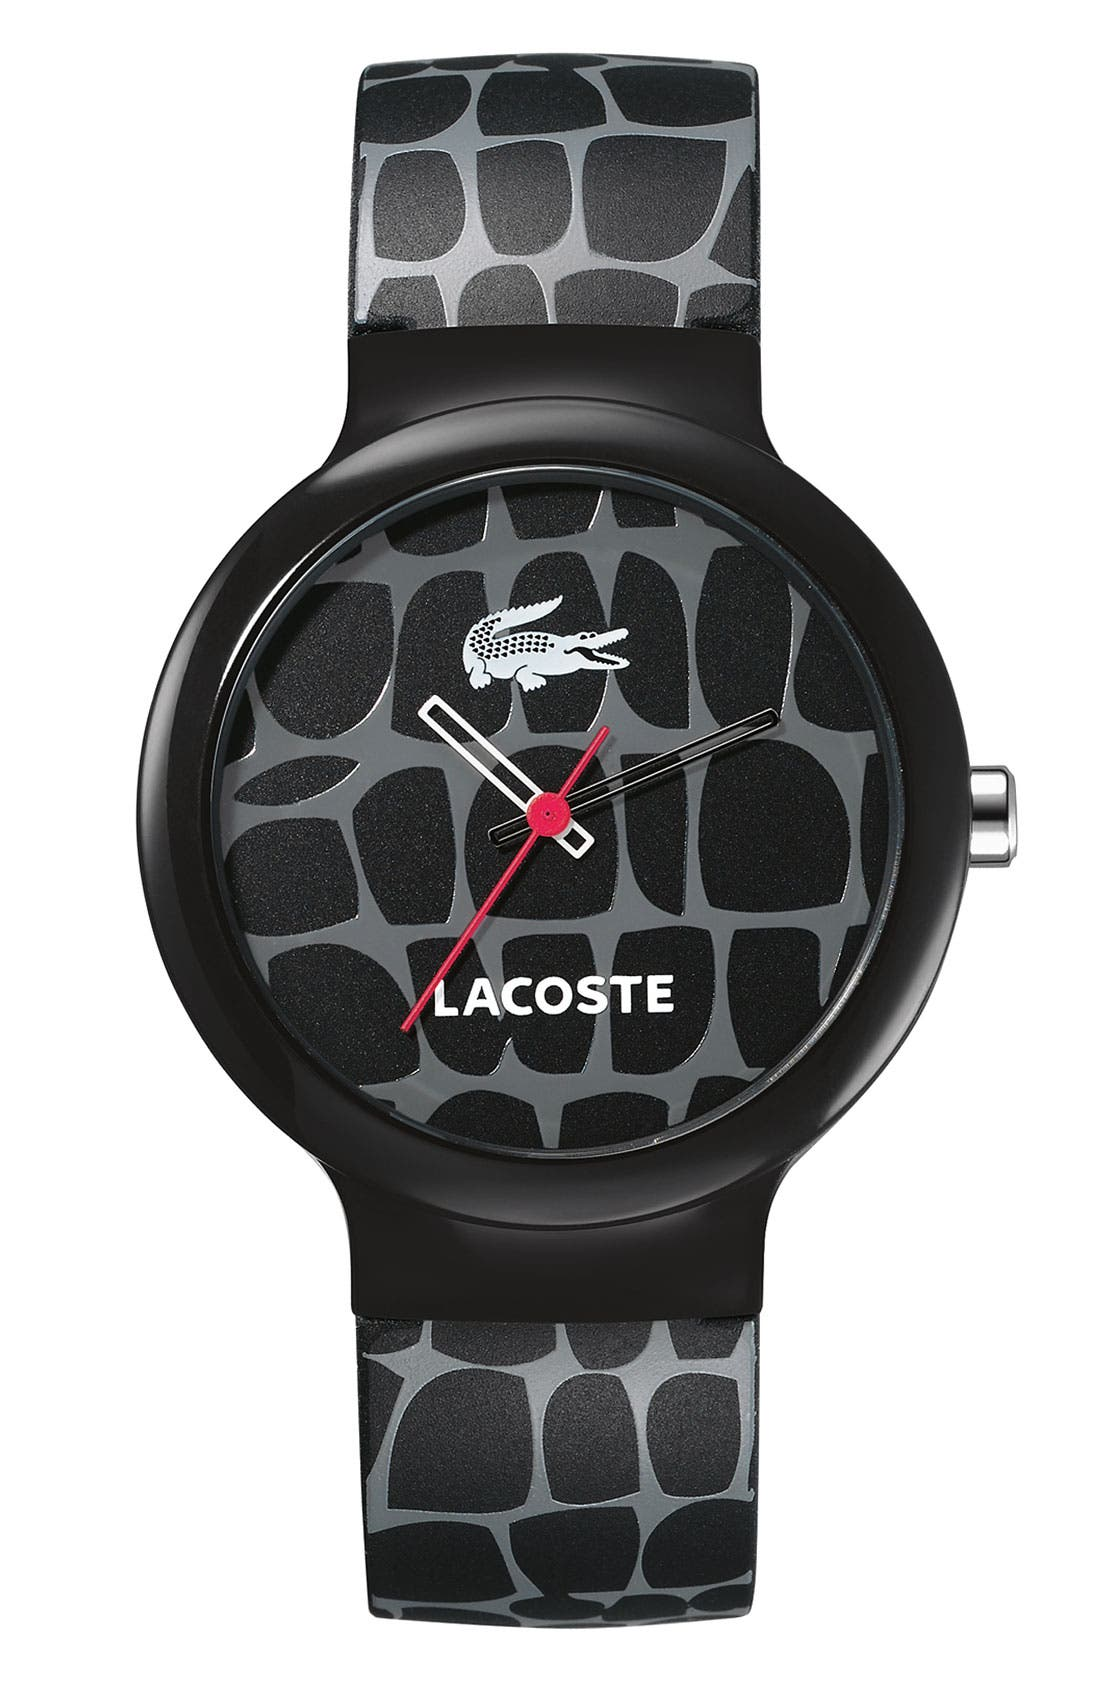 Main Image - Lacoste 'Goa' Croc Graphic Watch